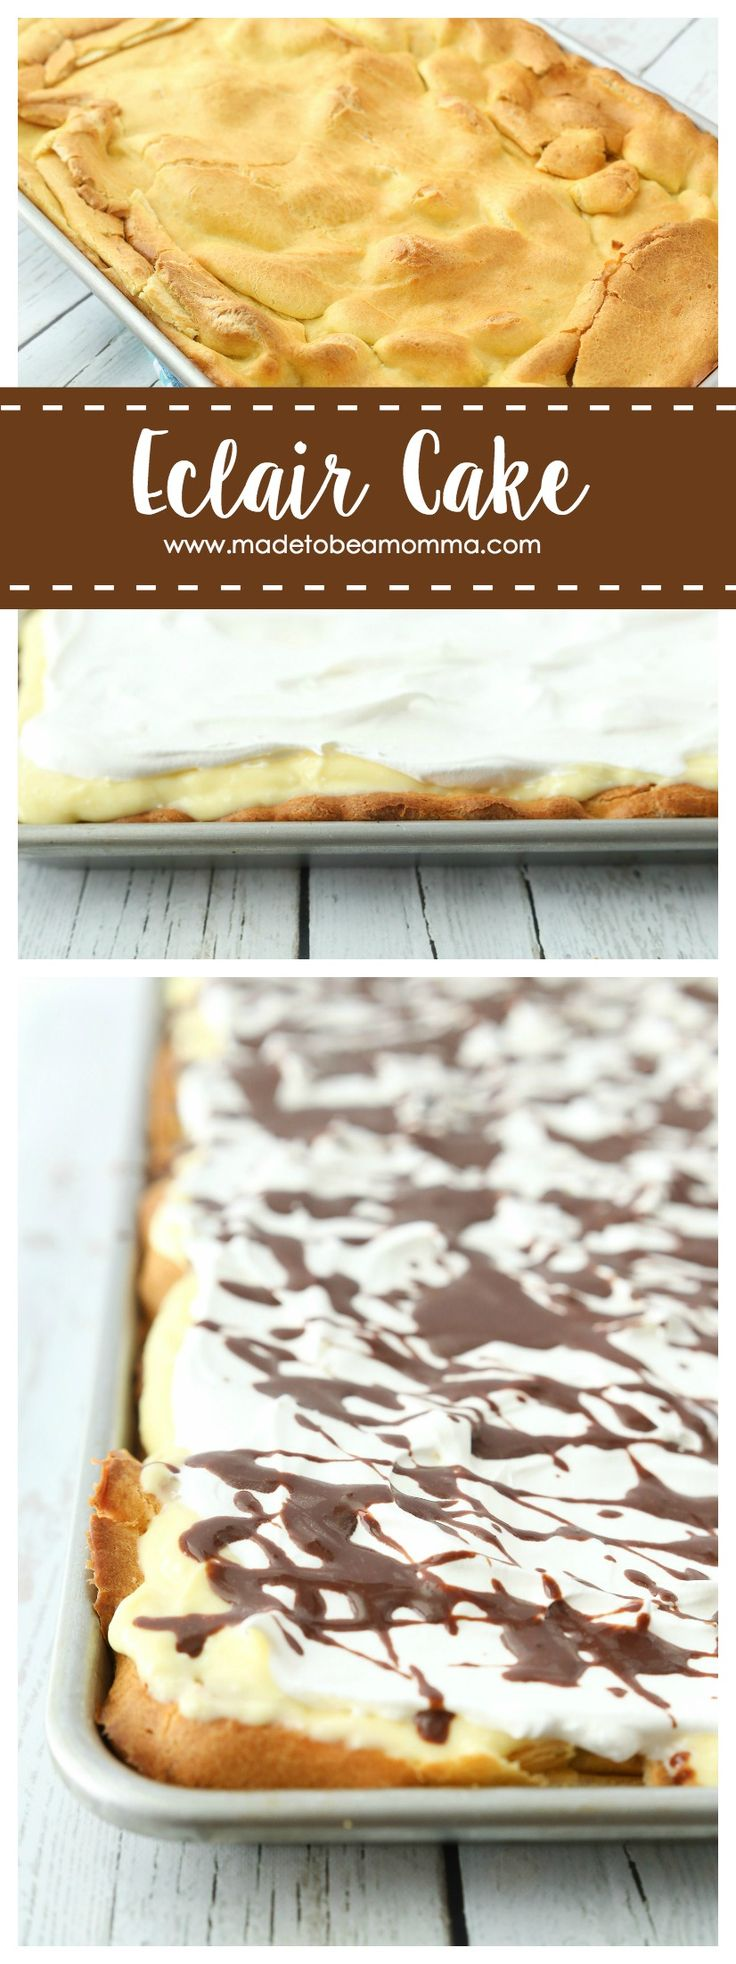 Eclair Cake - my parents used to make this all the time growing up! Great dessert to impress and tastes amazing!